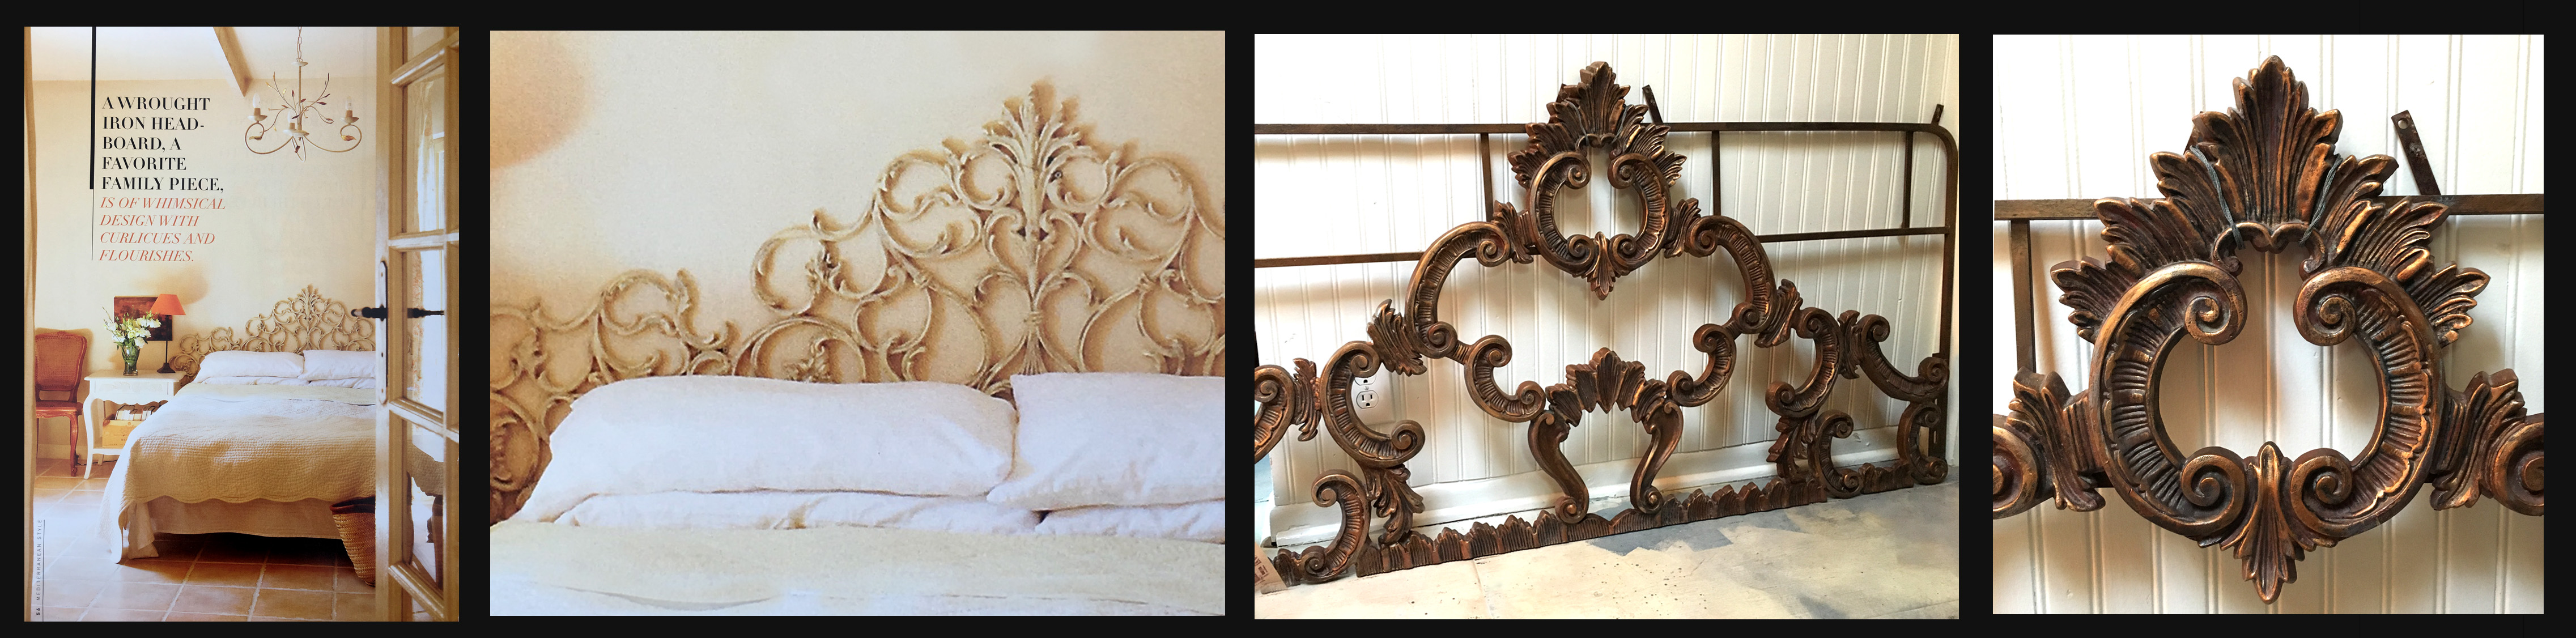 Antique Cast Iron French Bedframe